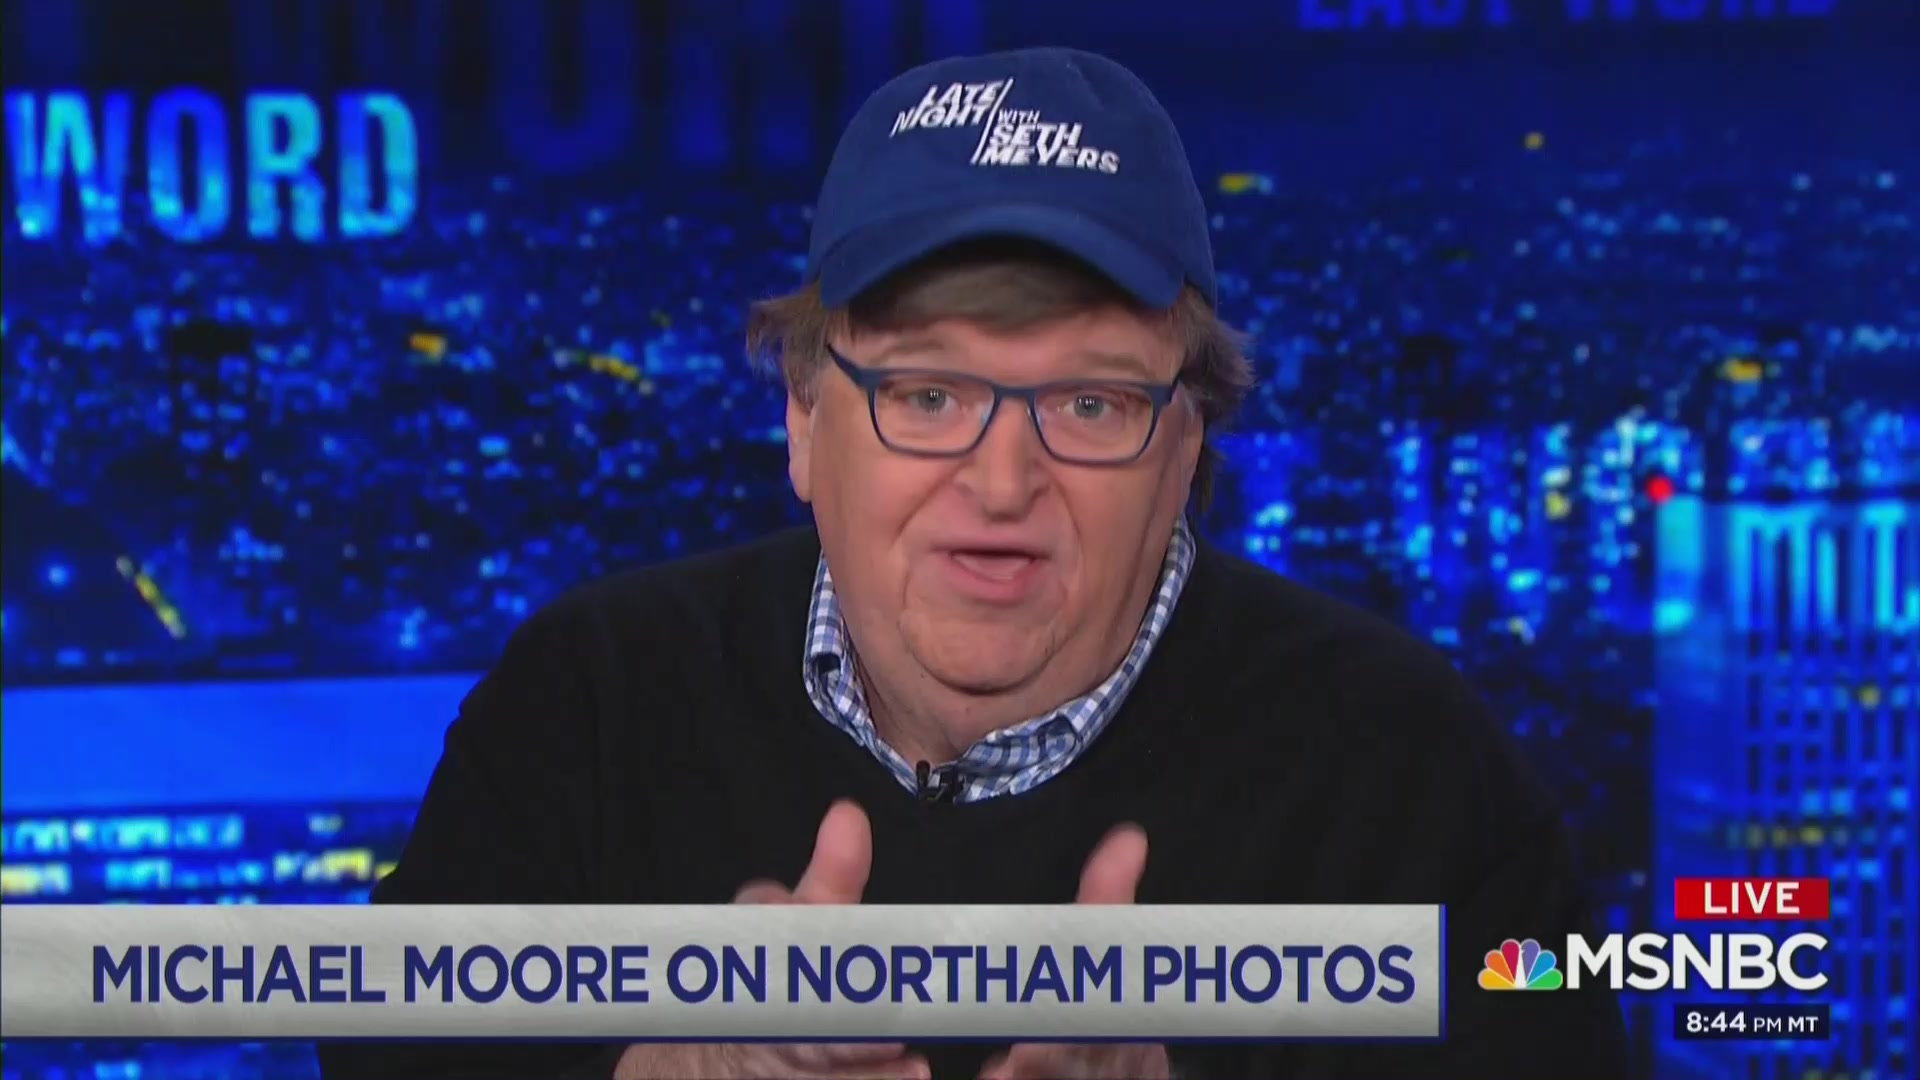 Michael Moore Begs Ralph Northam To Call MSNBC And Resign Live On Air